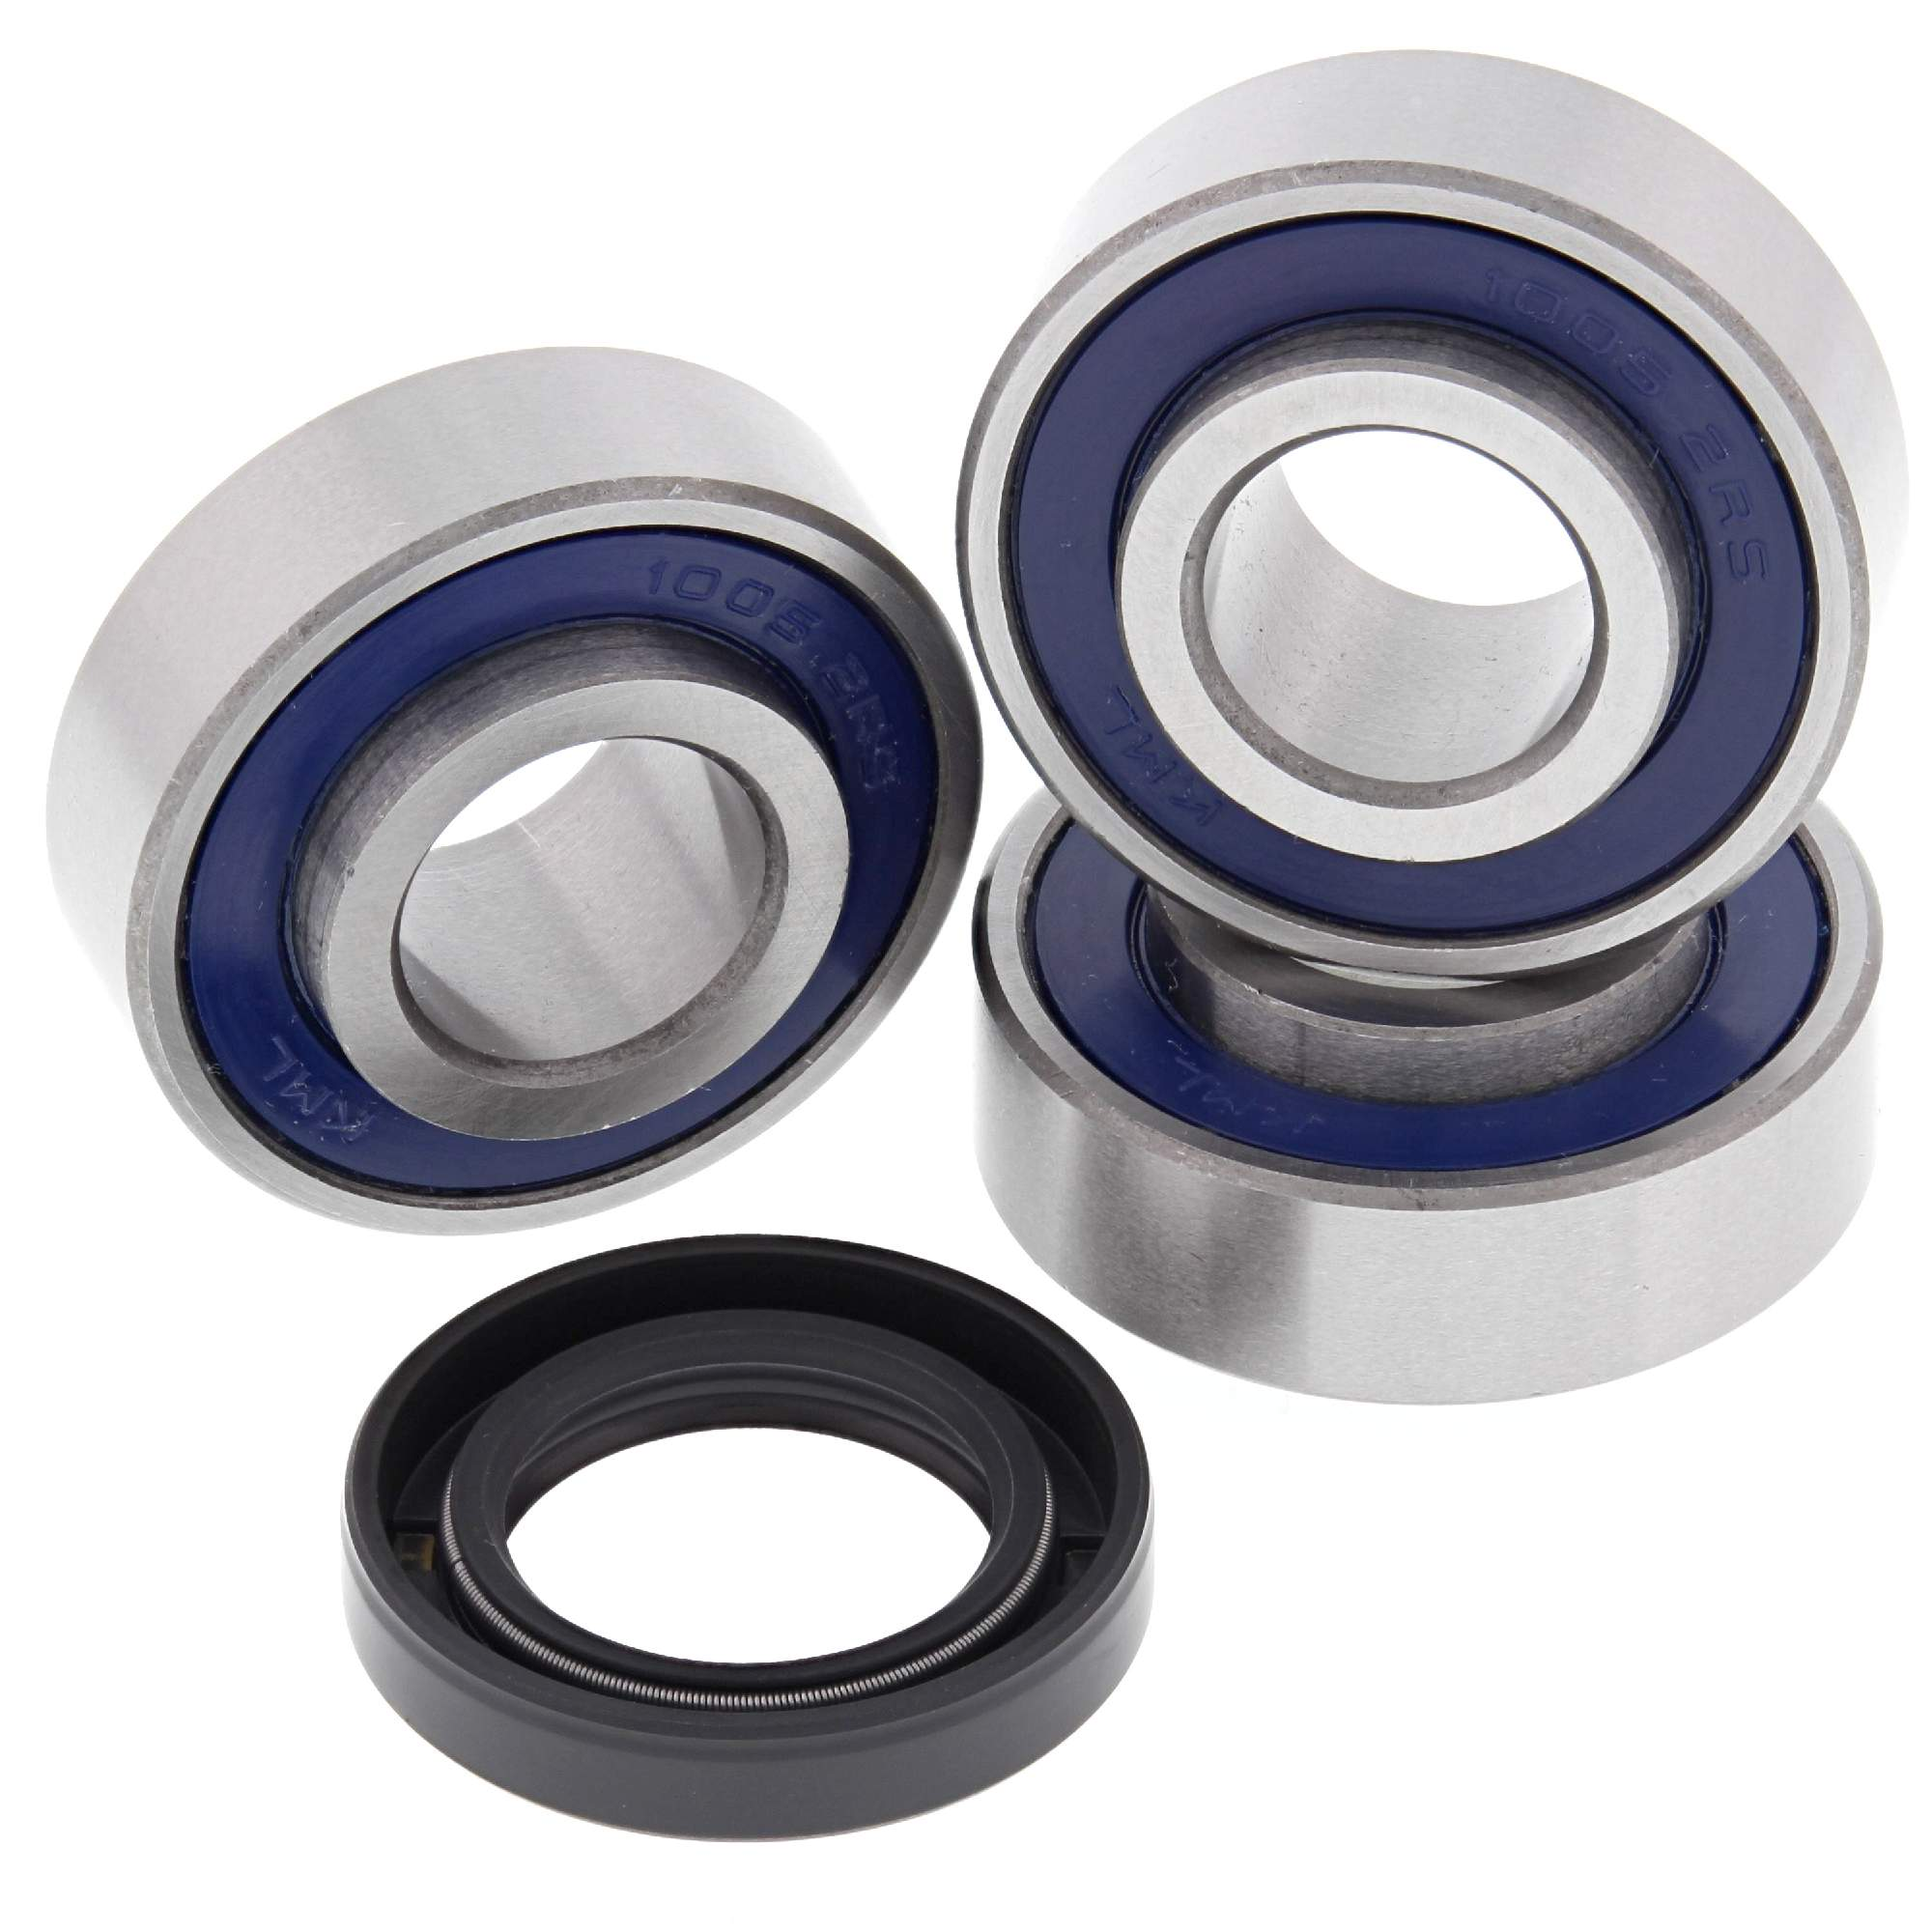 FX Super Glide 1972 All Balls Rear Wheel Bearing and Seal Kit